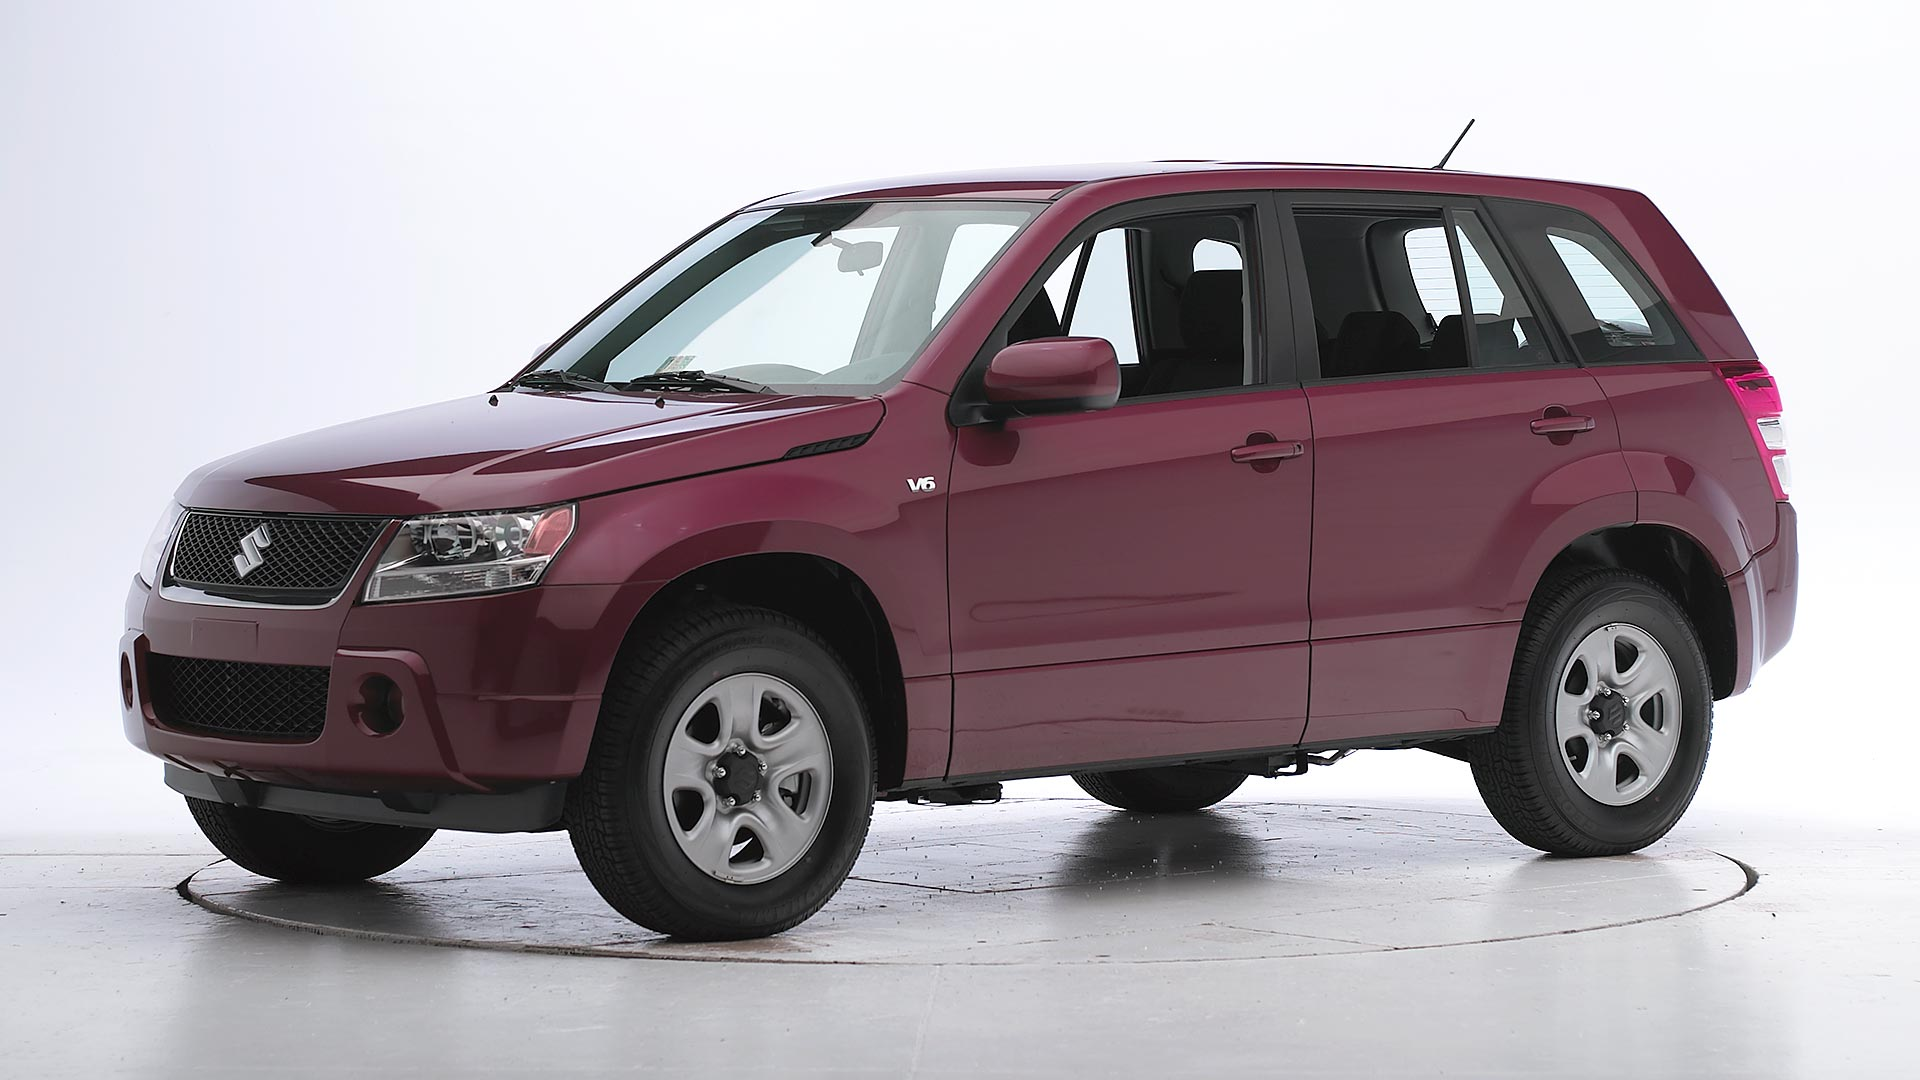 2008 Suzuki Grand Vitara 4-door SUV